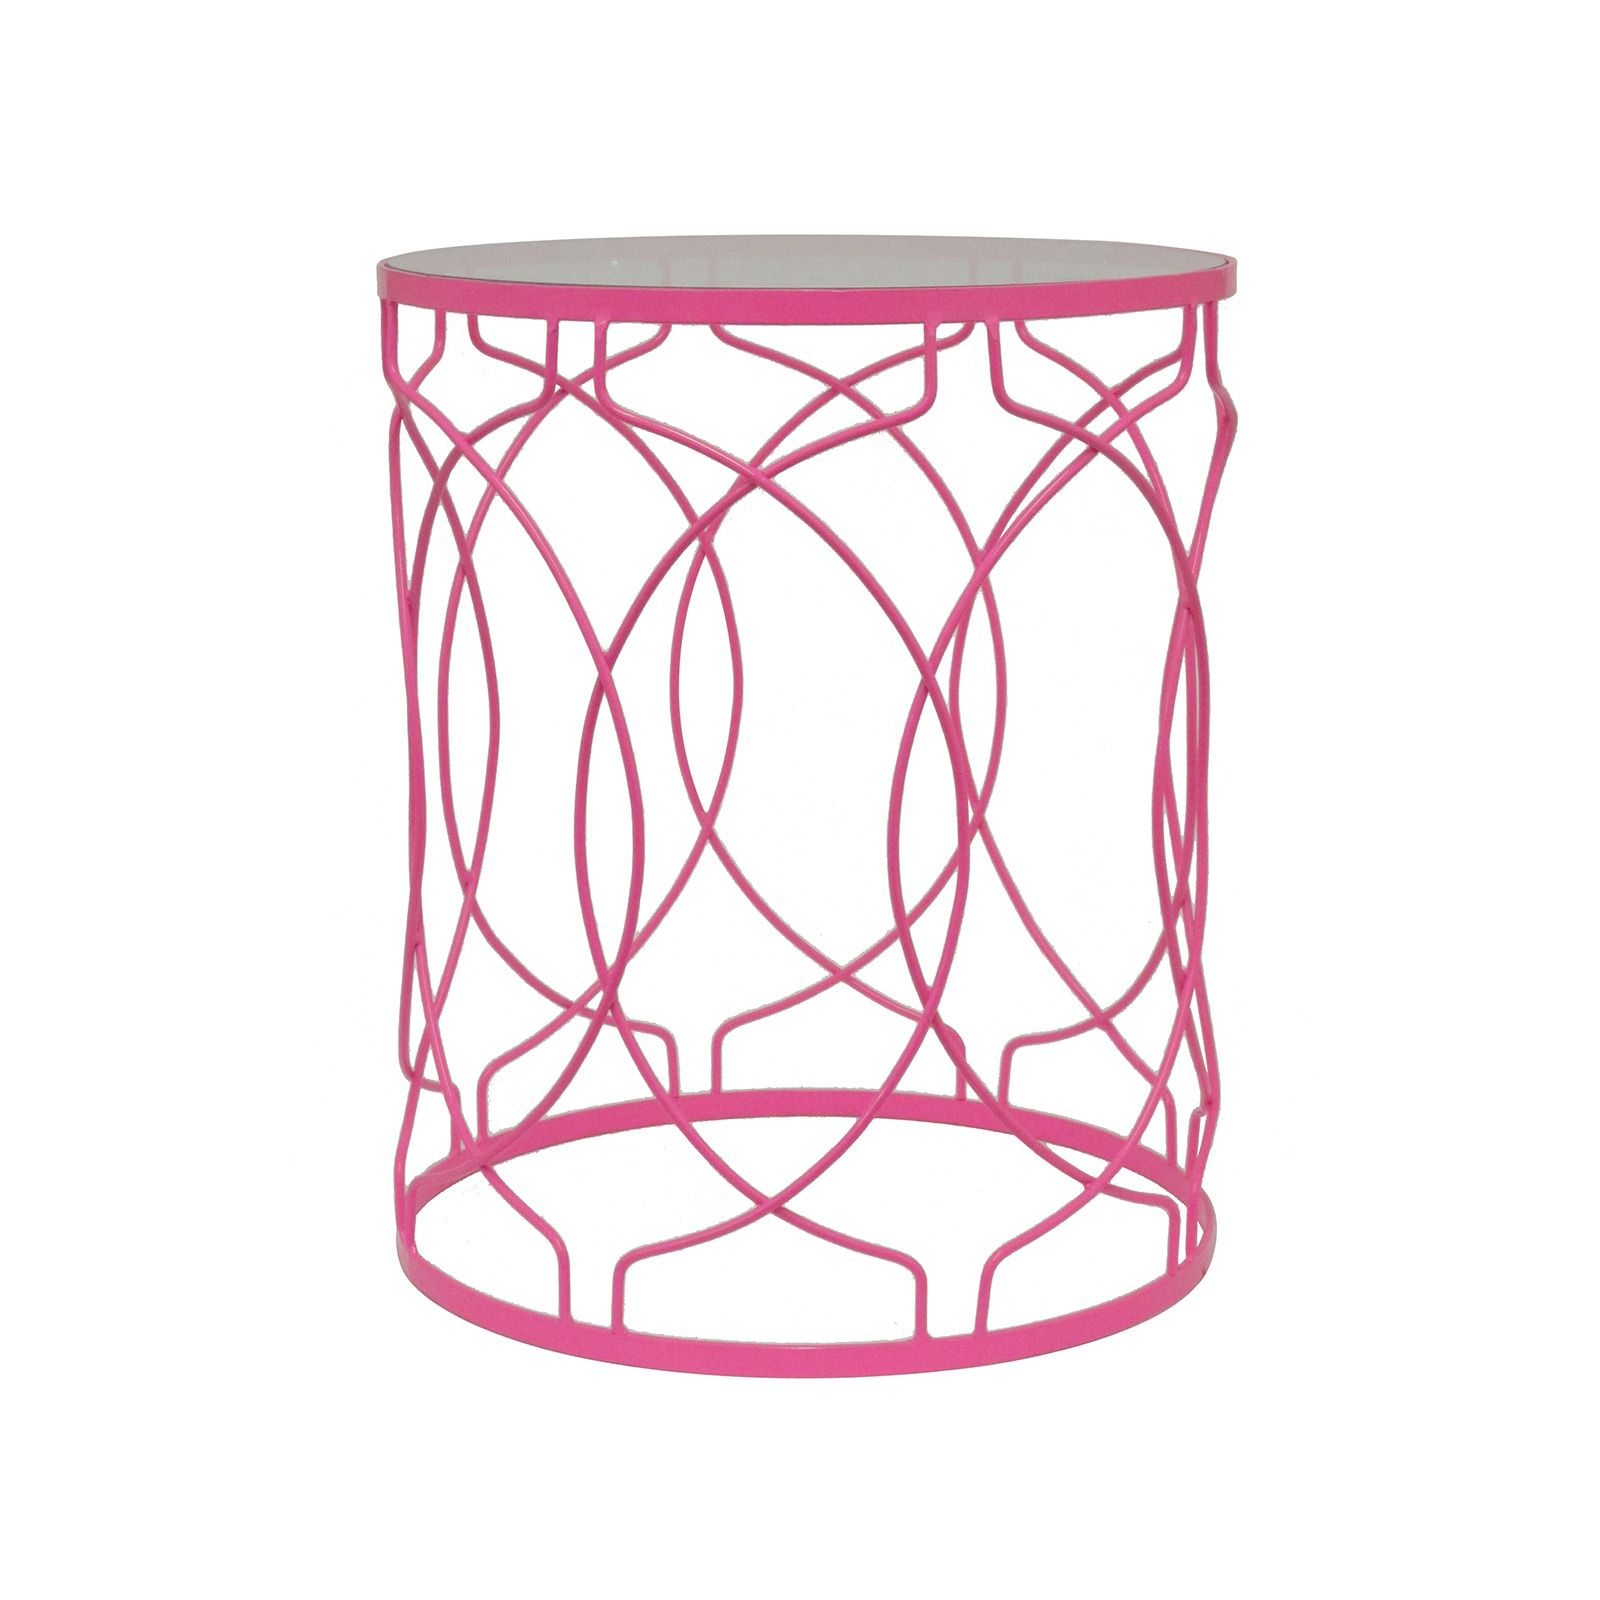 Our Pink Metal Accent Table Is A Spirited Addition To Any Room. Featuring A  Vibrant